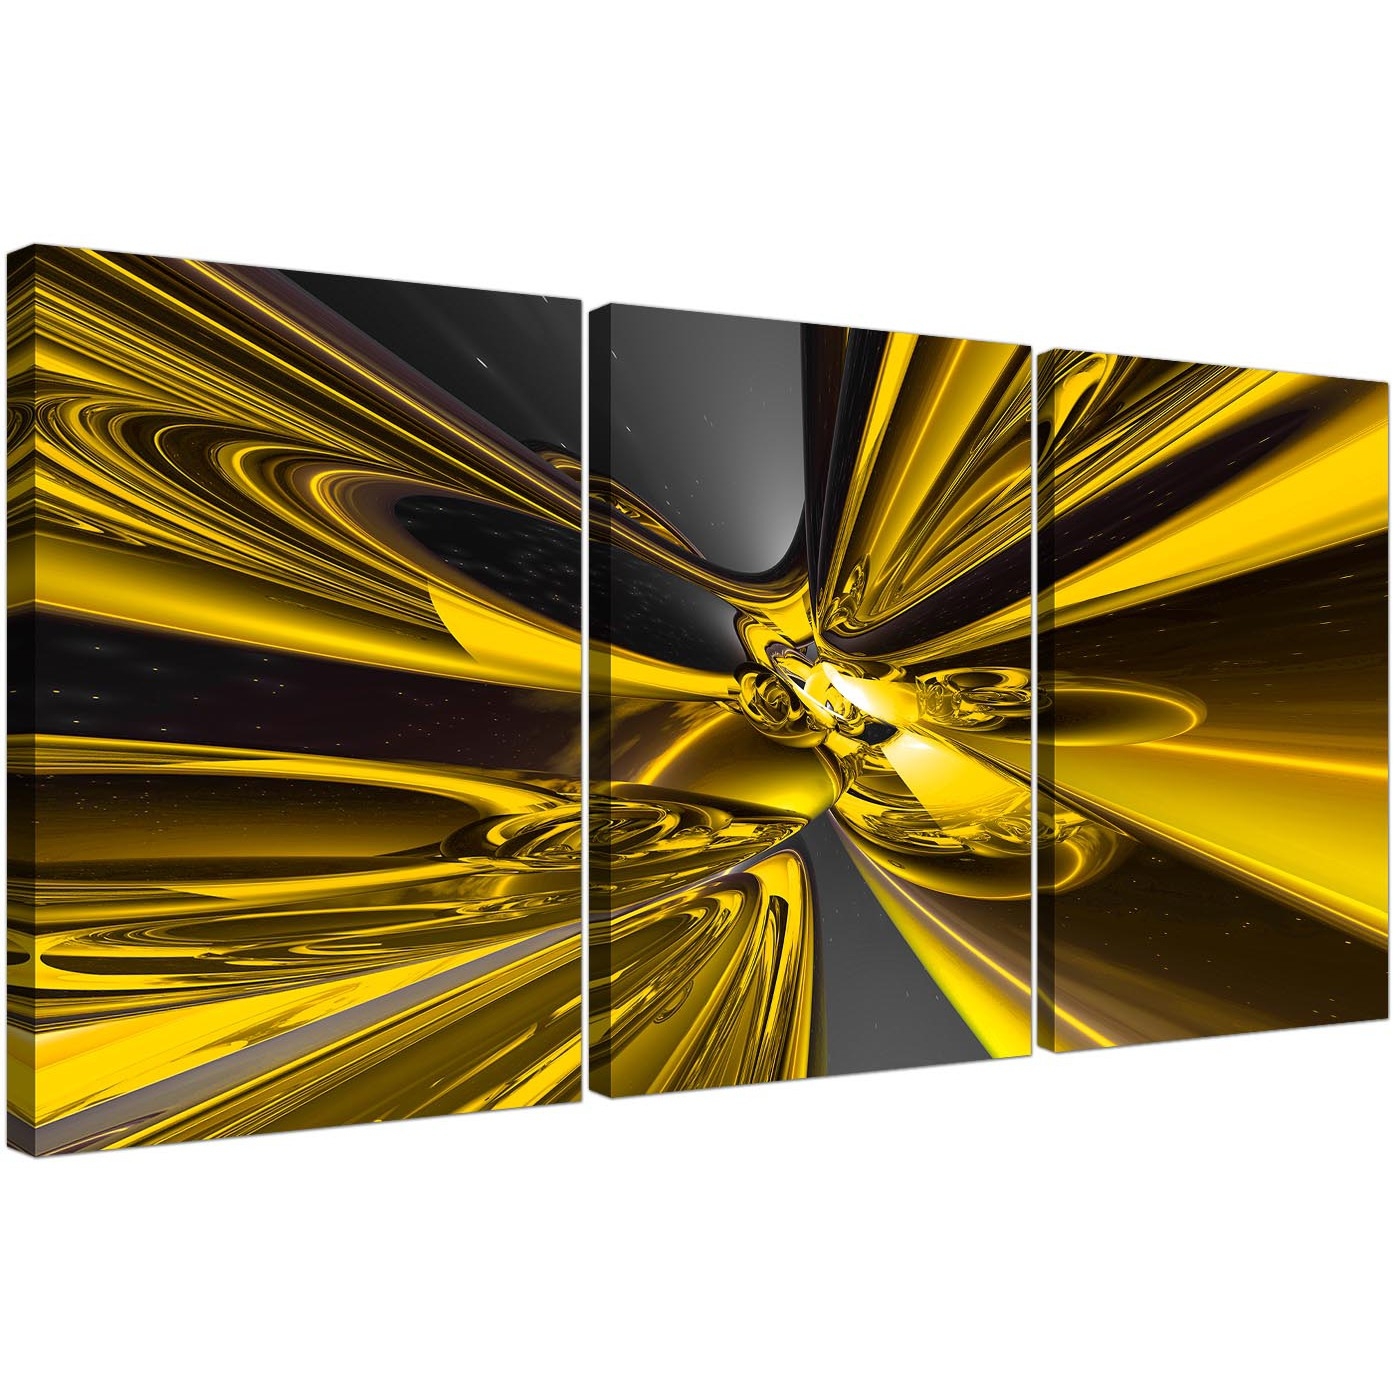 Set of Three Abstract Canvas Art in Yellow and Black